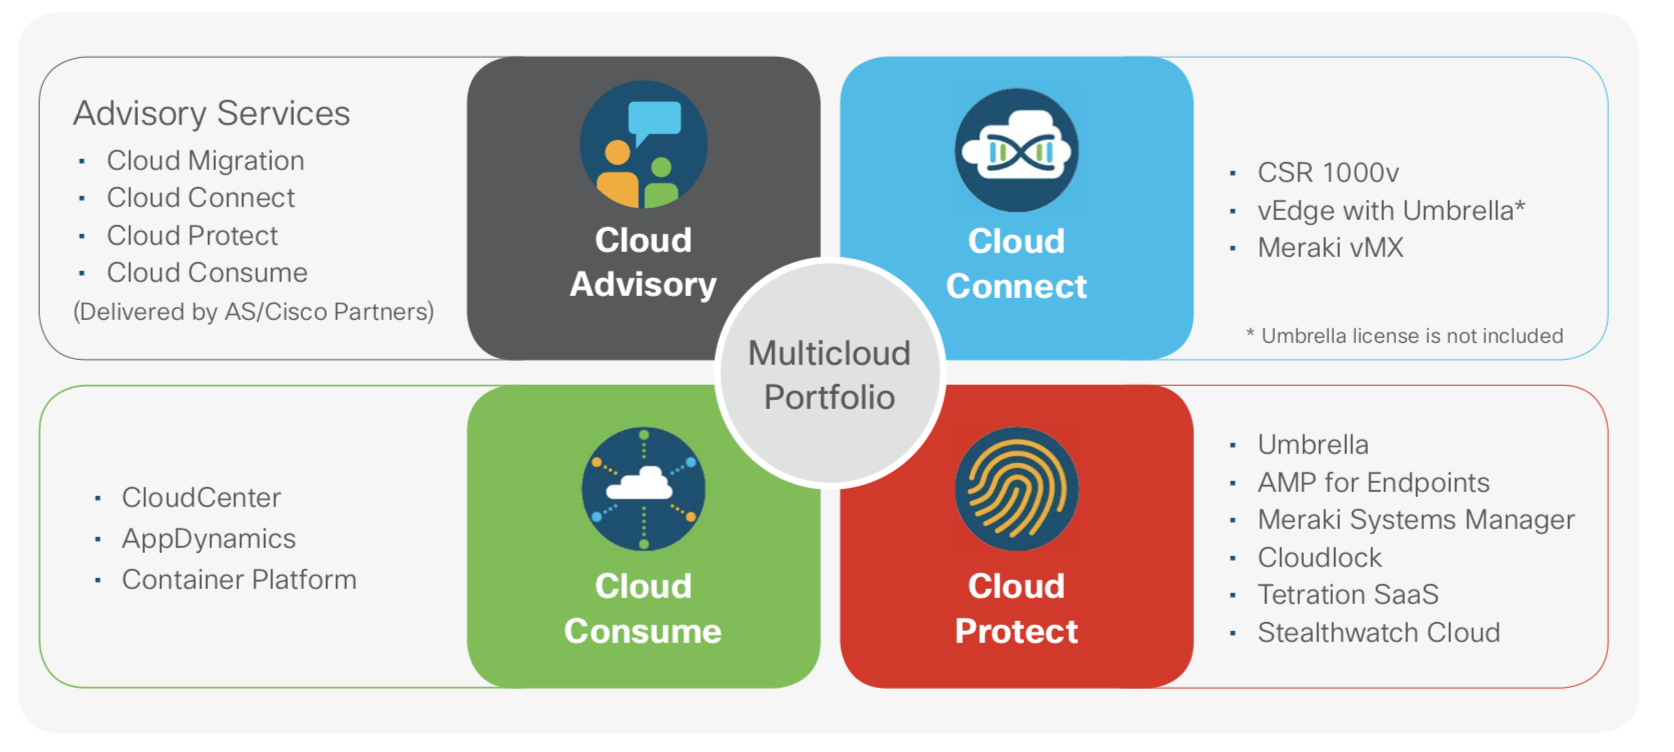 Cisco's Software Bridge to Multicloud - Wikibon Research